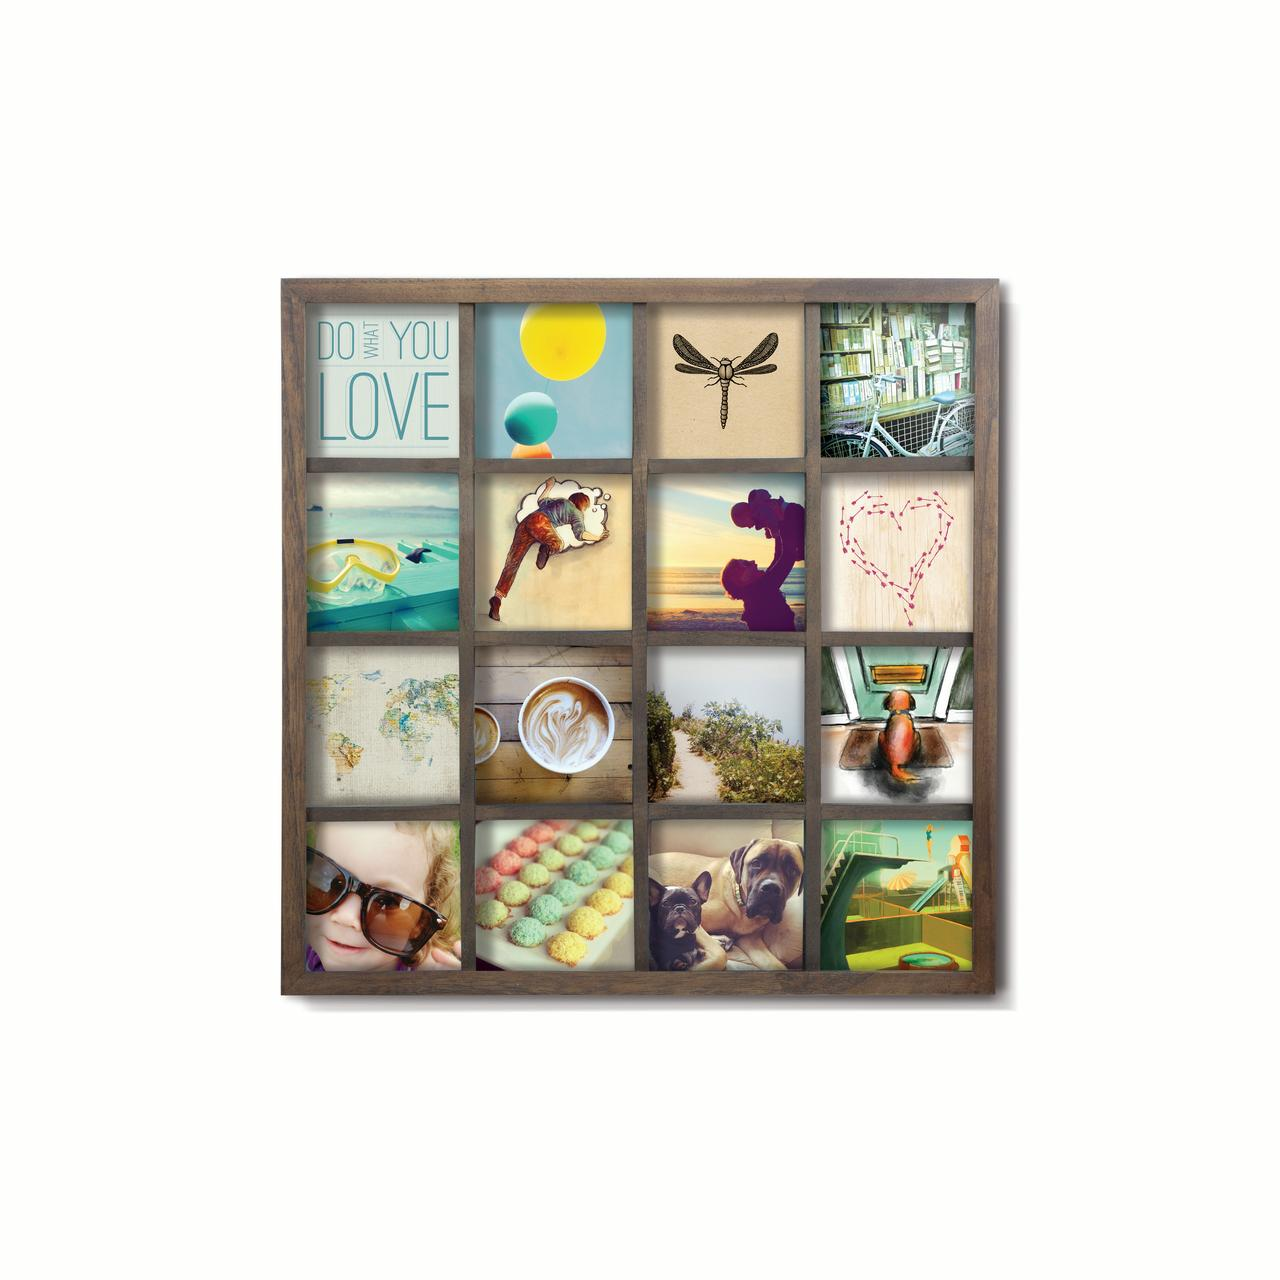 Umbra Gridart 4x4 Picture Frame Diy Gallery Style Multi Picture